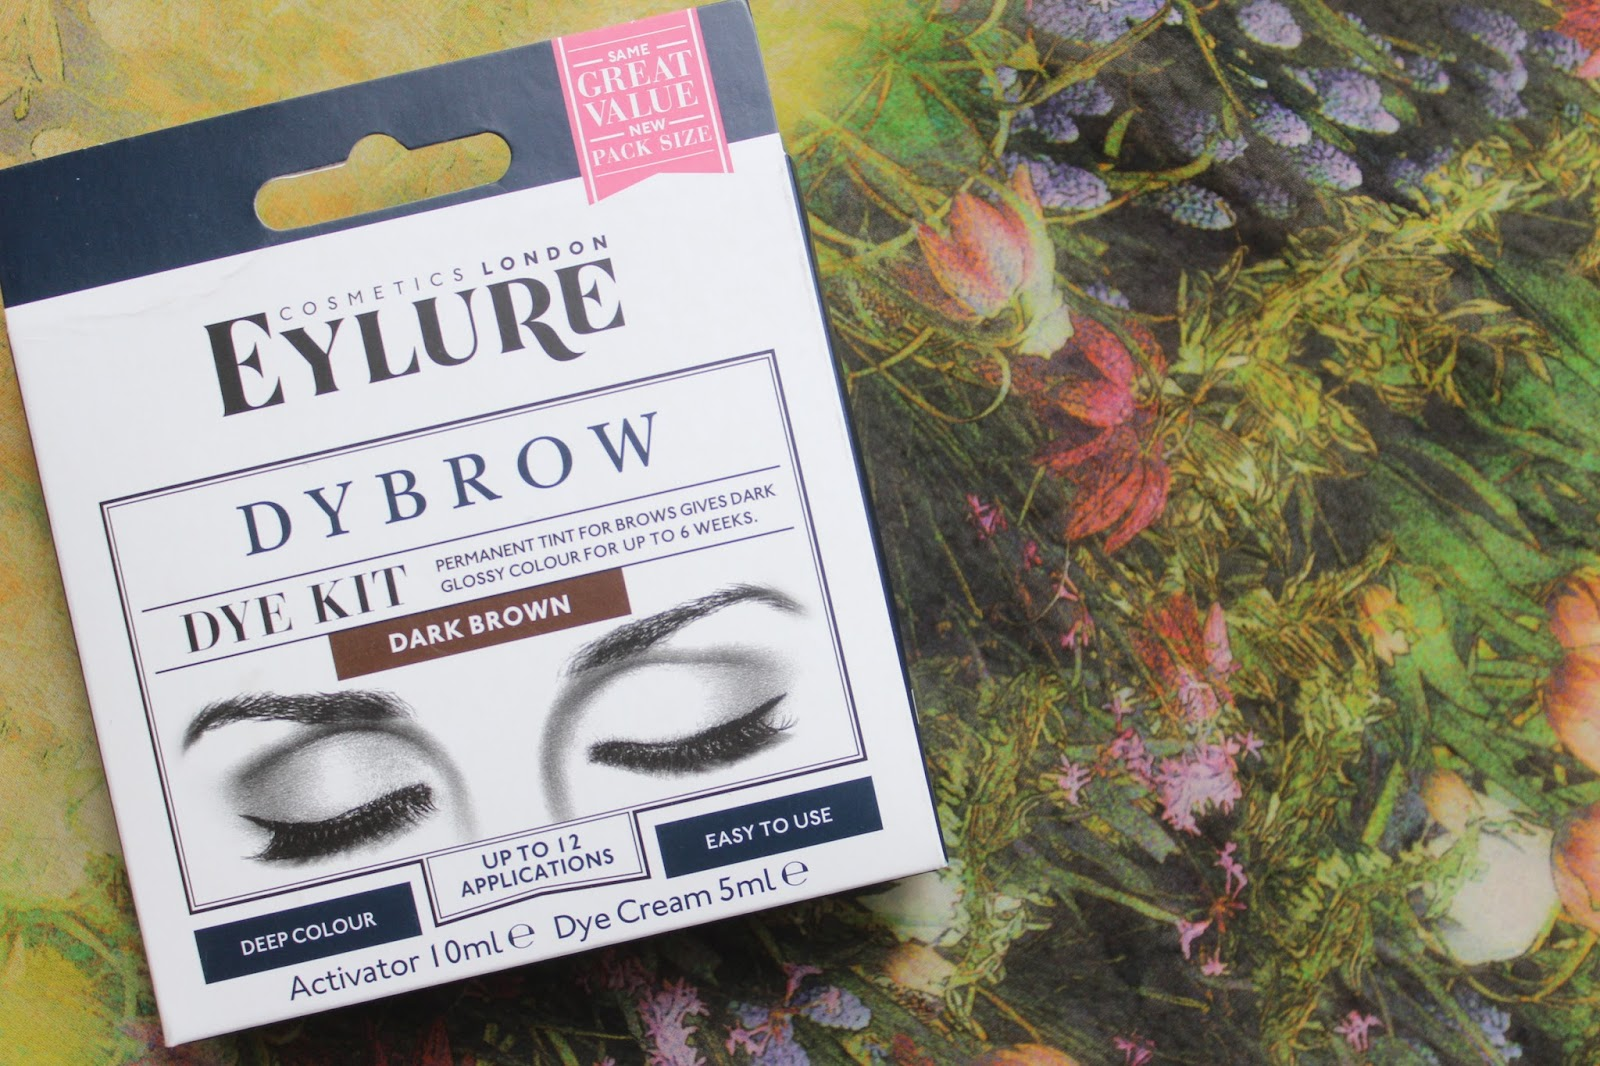 99a26a12e3f The Mermaid Life: EYELURE DYBROW REVIEW IN DARK BROWN - BEFORE AND AFTER